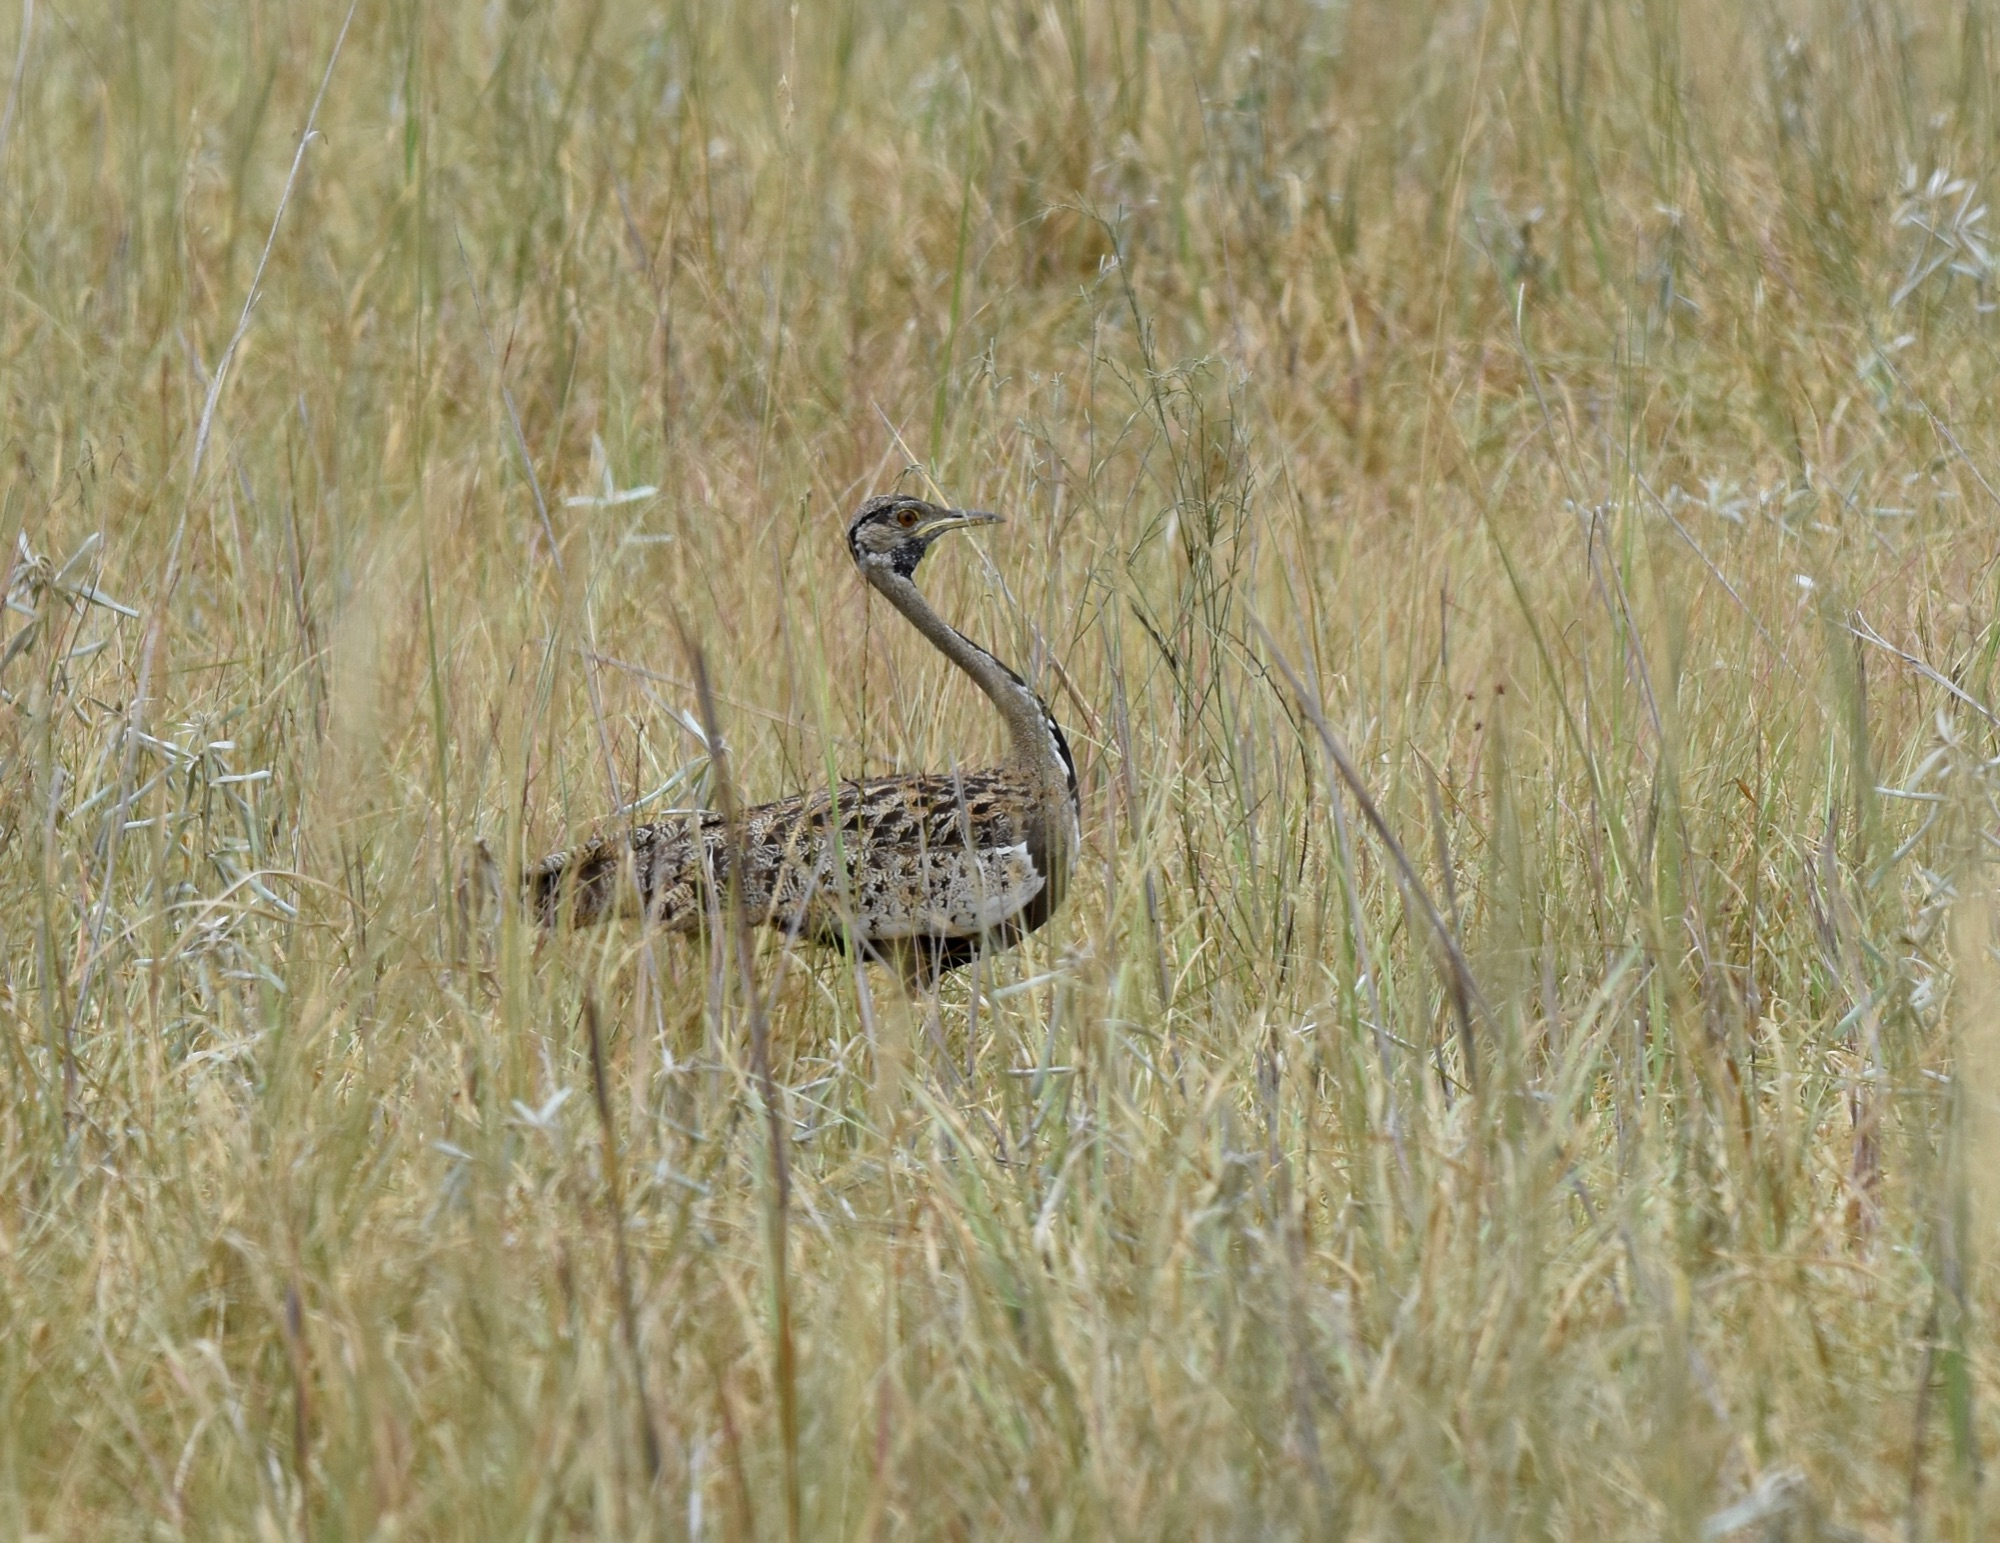 Black-bellied Bustard by Nick Bray